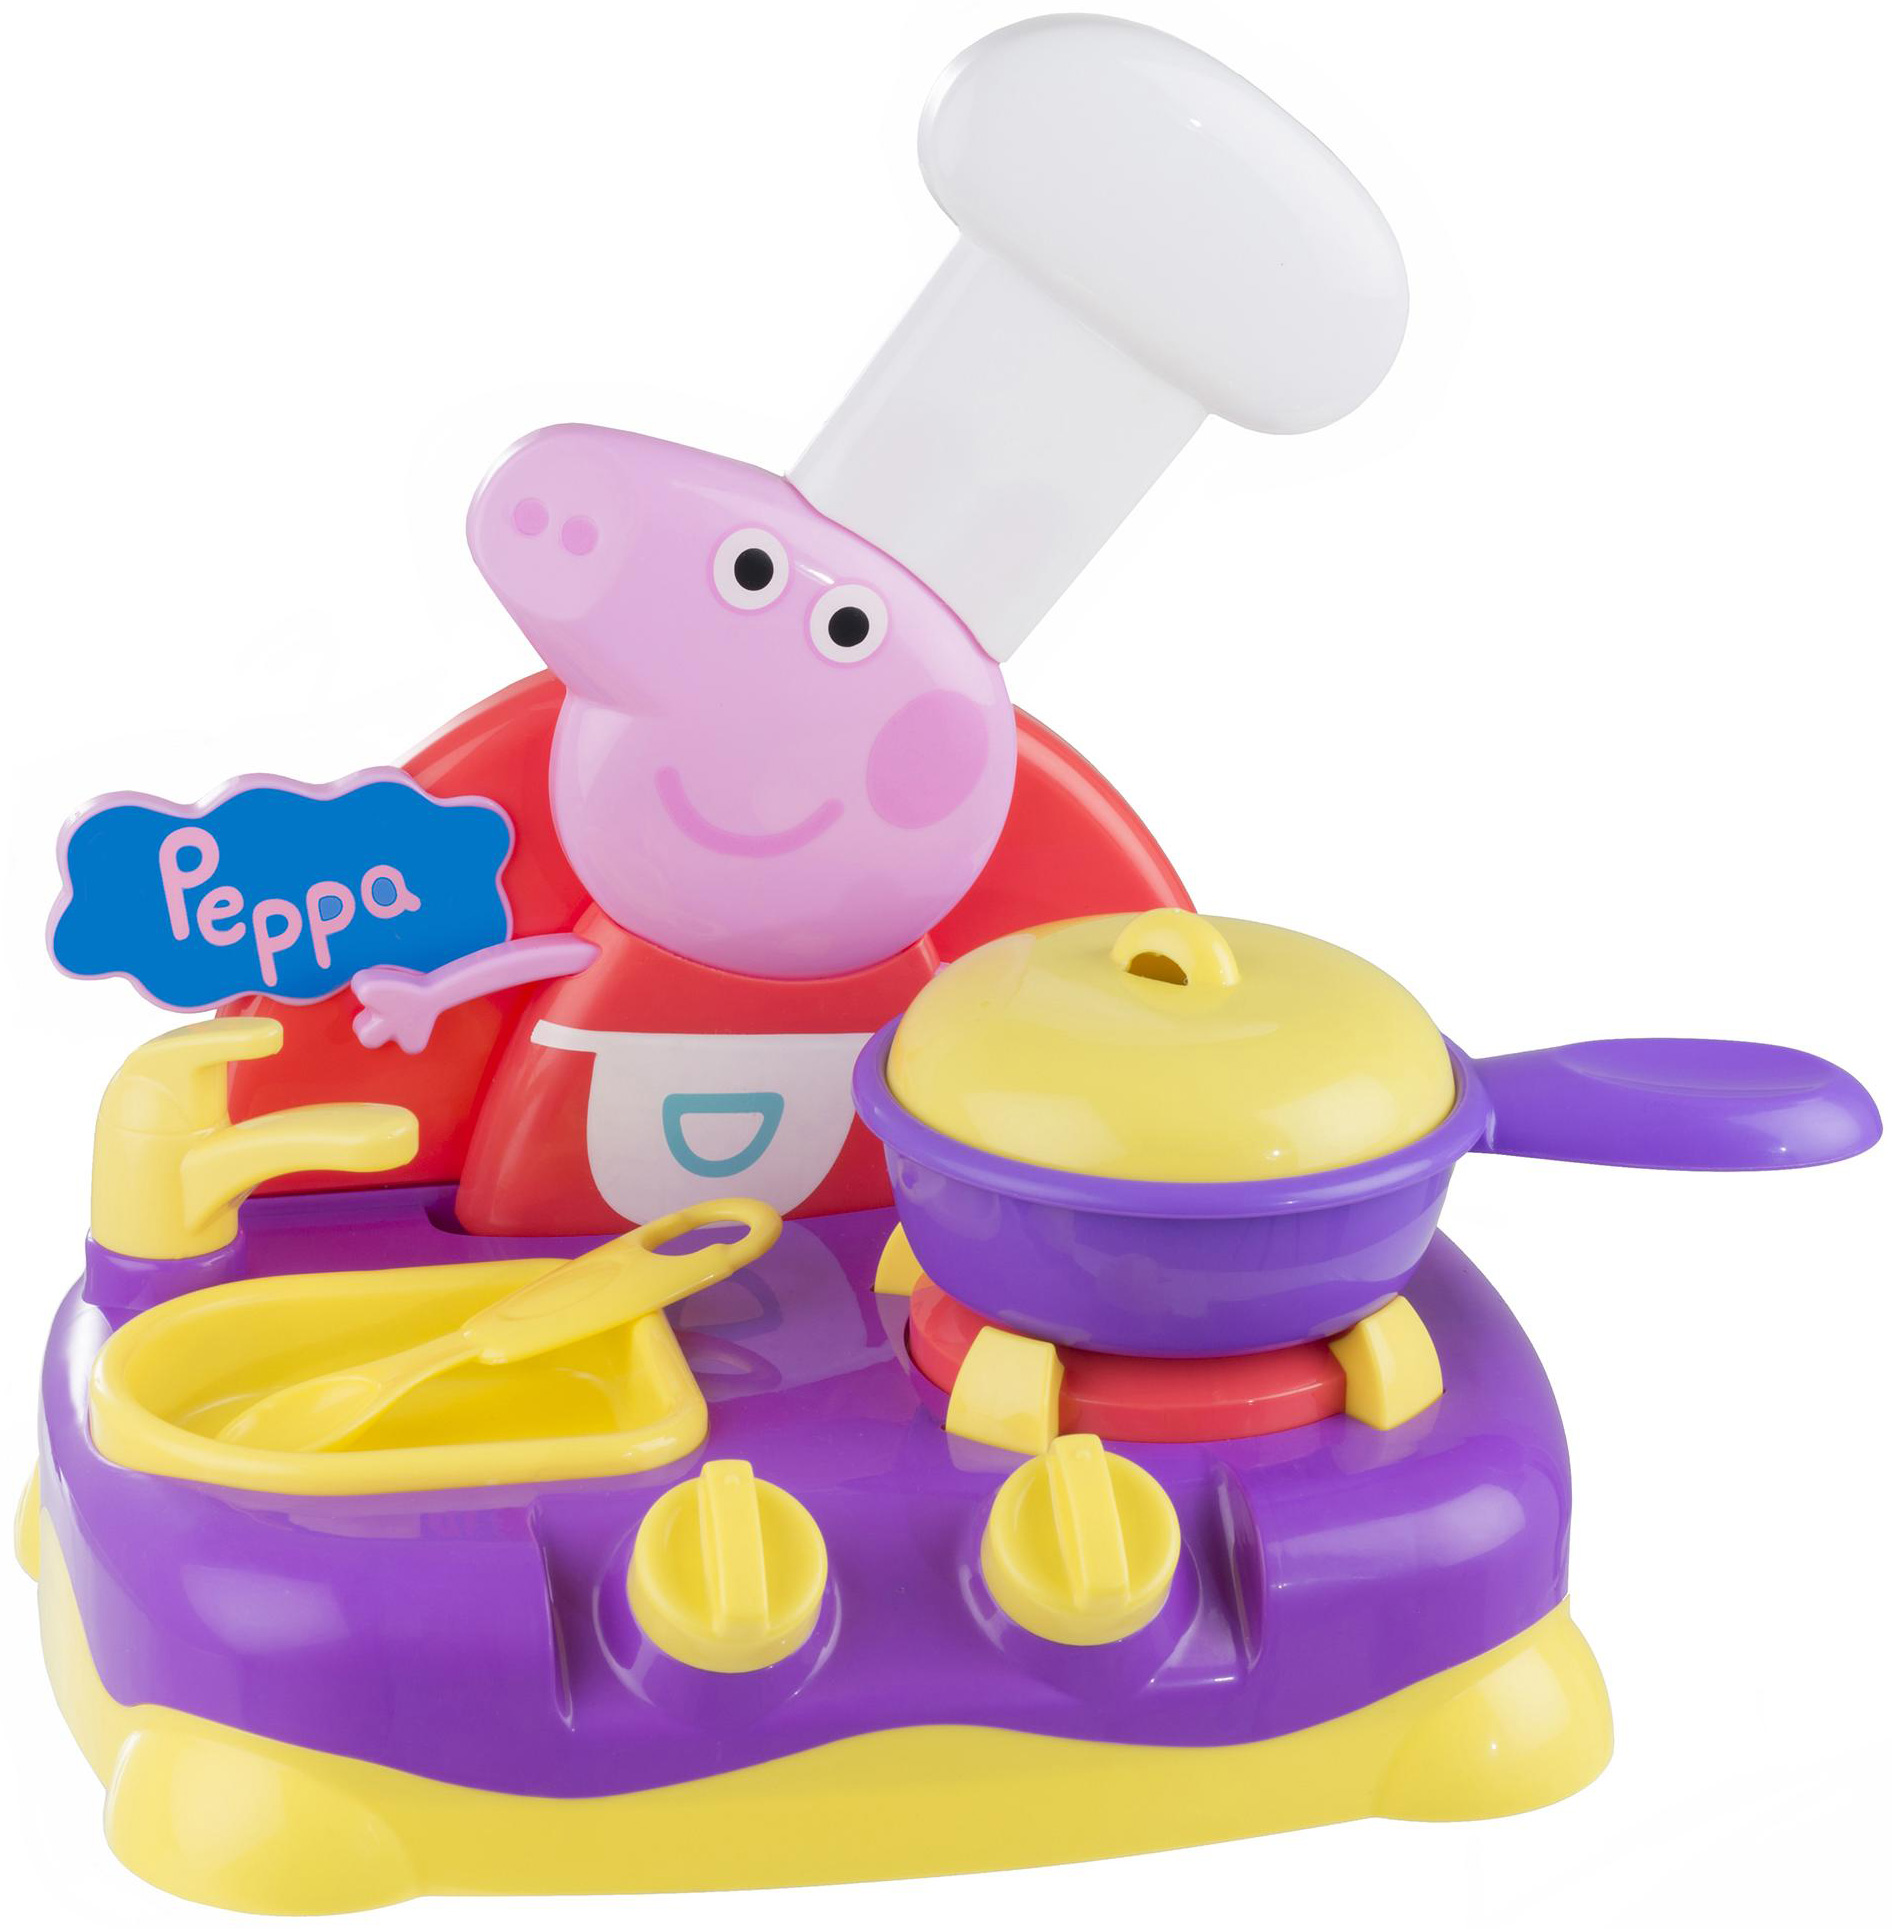 Cuisine Peppa Pig Peppa Pig Sing Along Kitchen Toddler Child Pretend Play